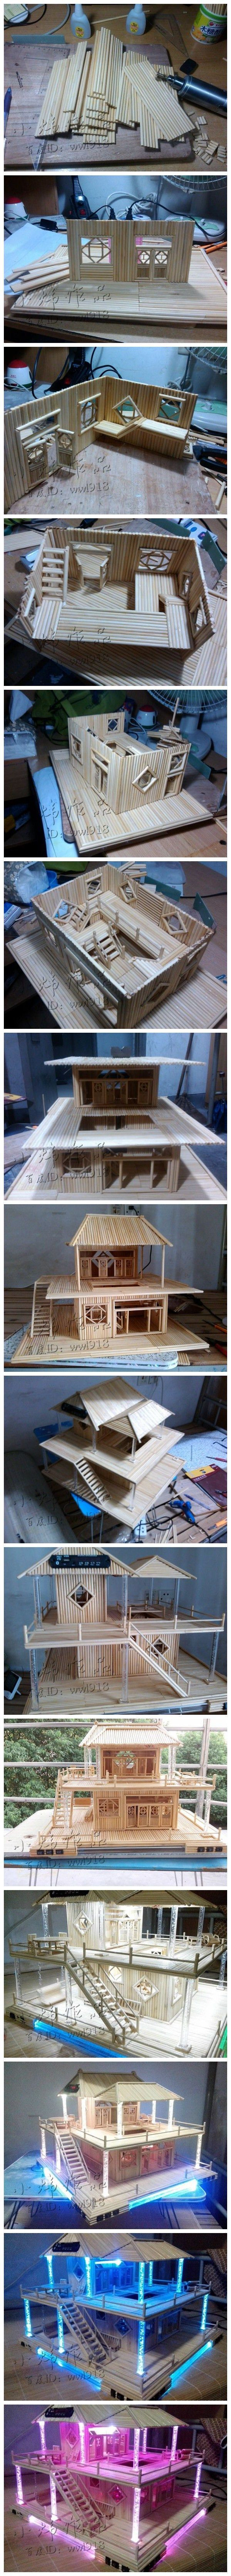 This beautiful house is made from chopsticks - amazing